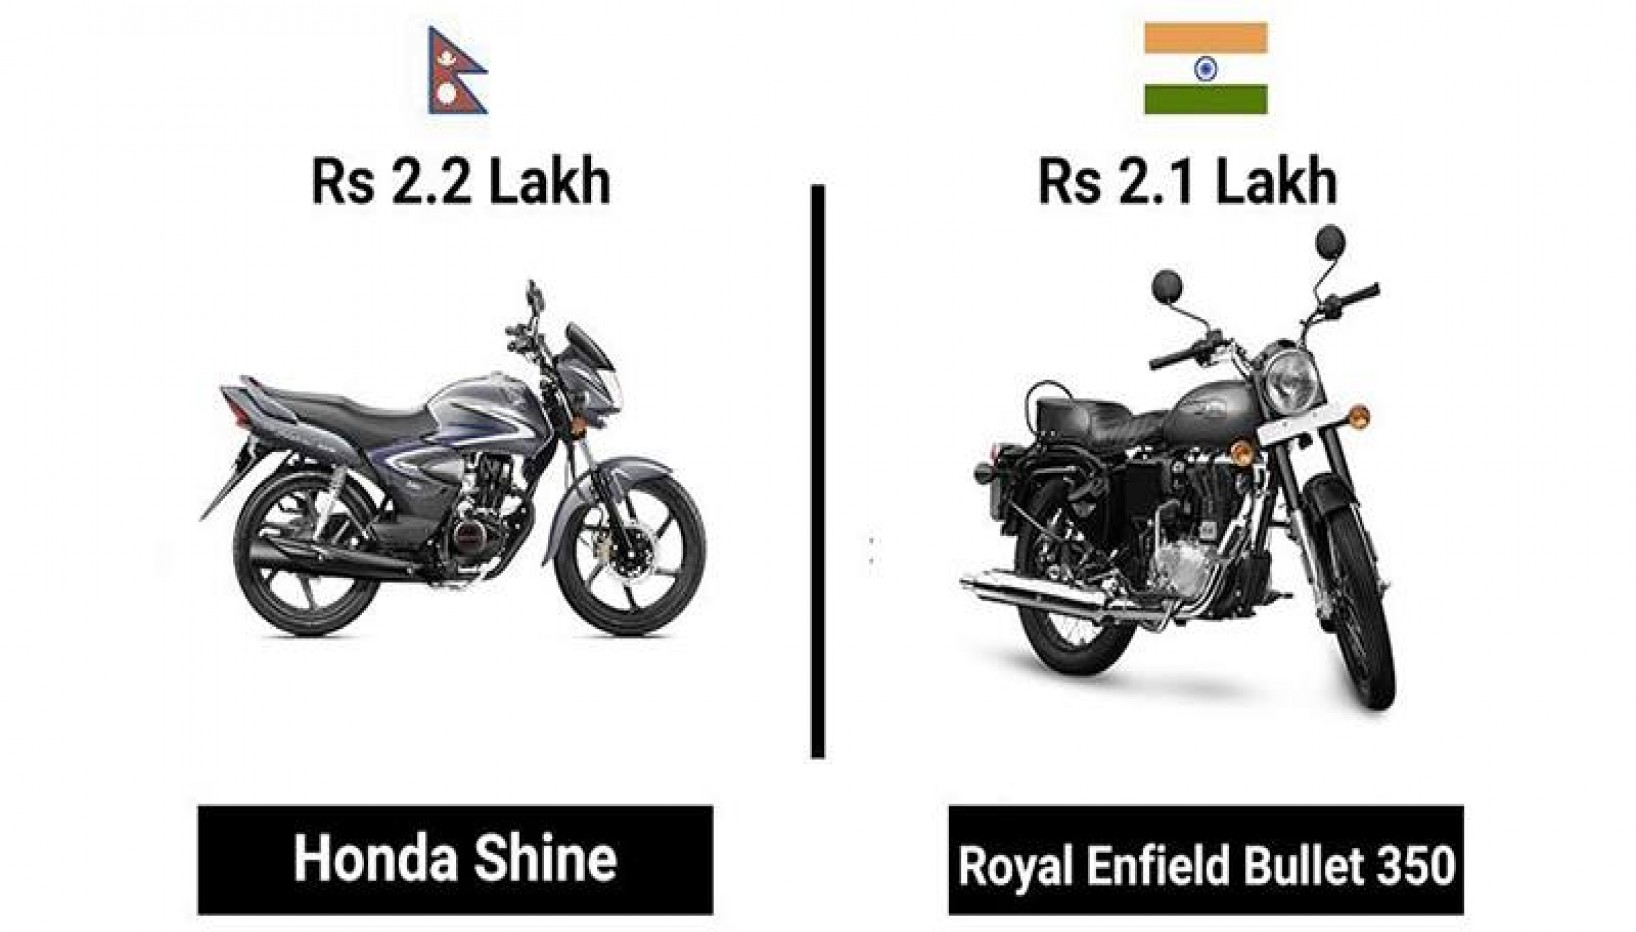 We Did A Bike Prices Comparison Between Nepal And India. The Results Are Shocking